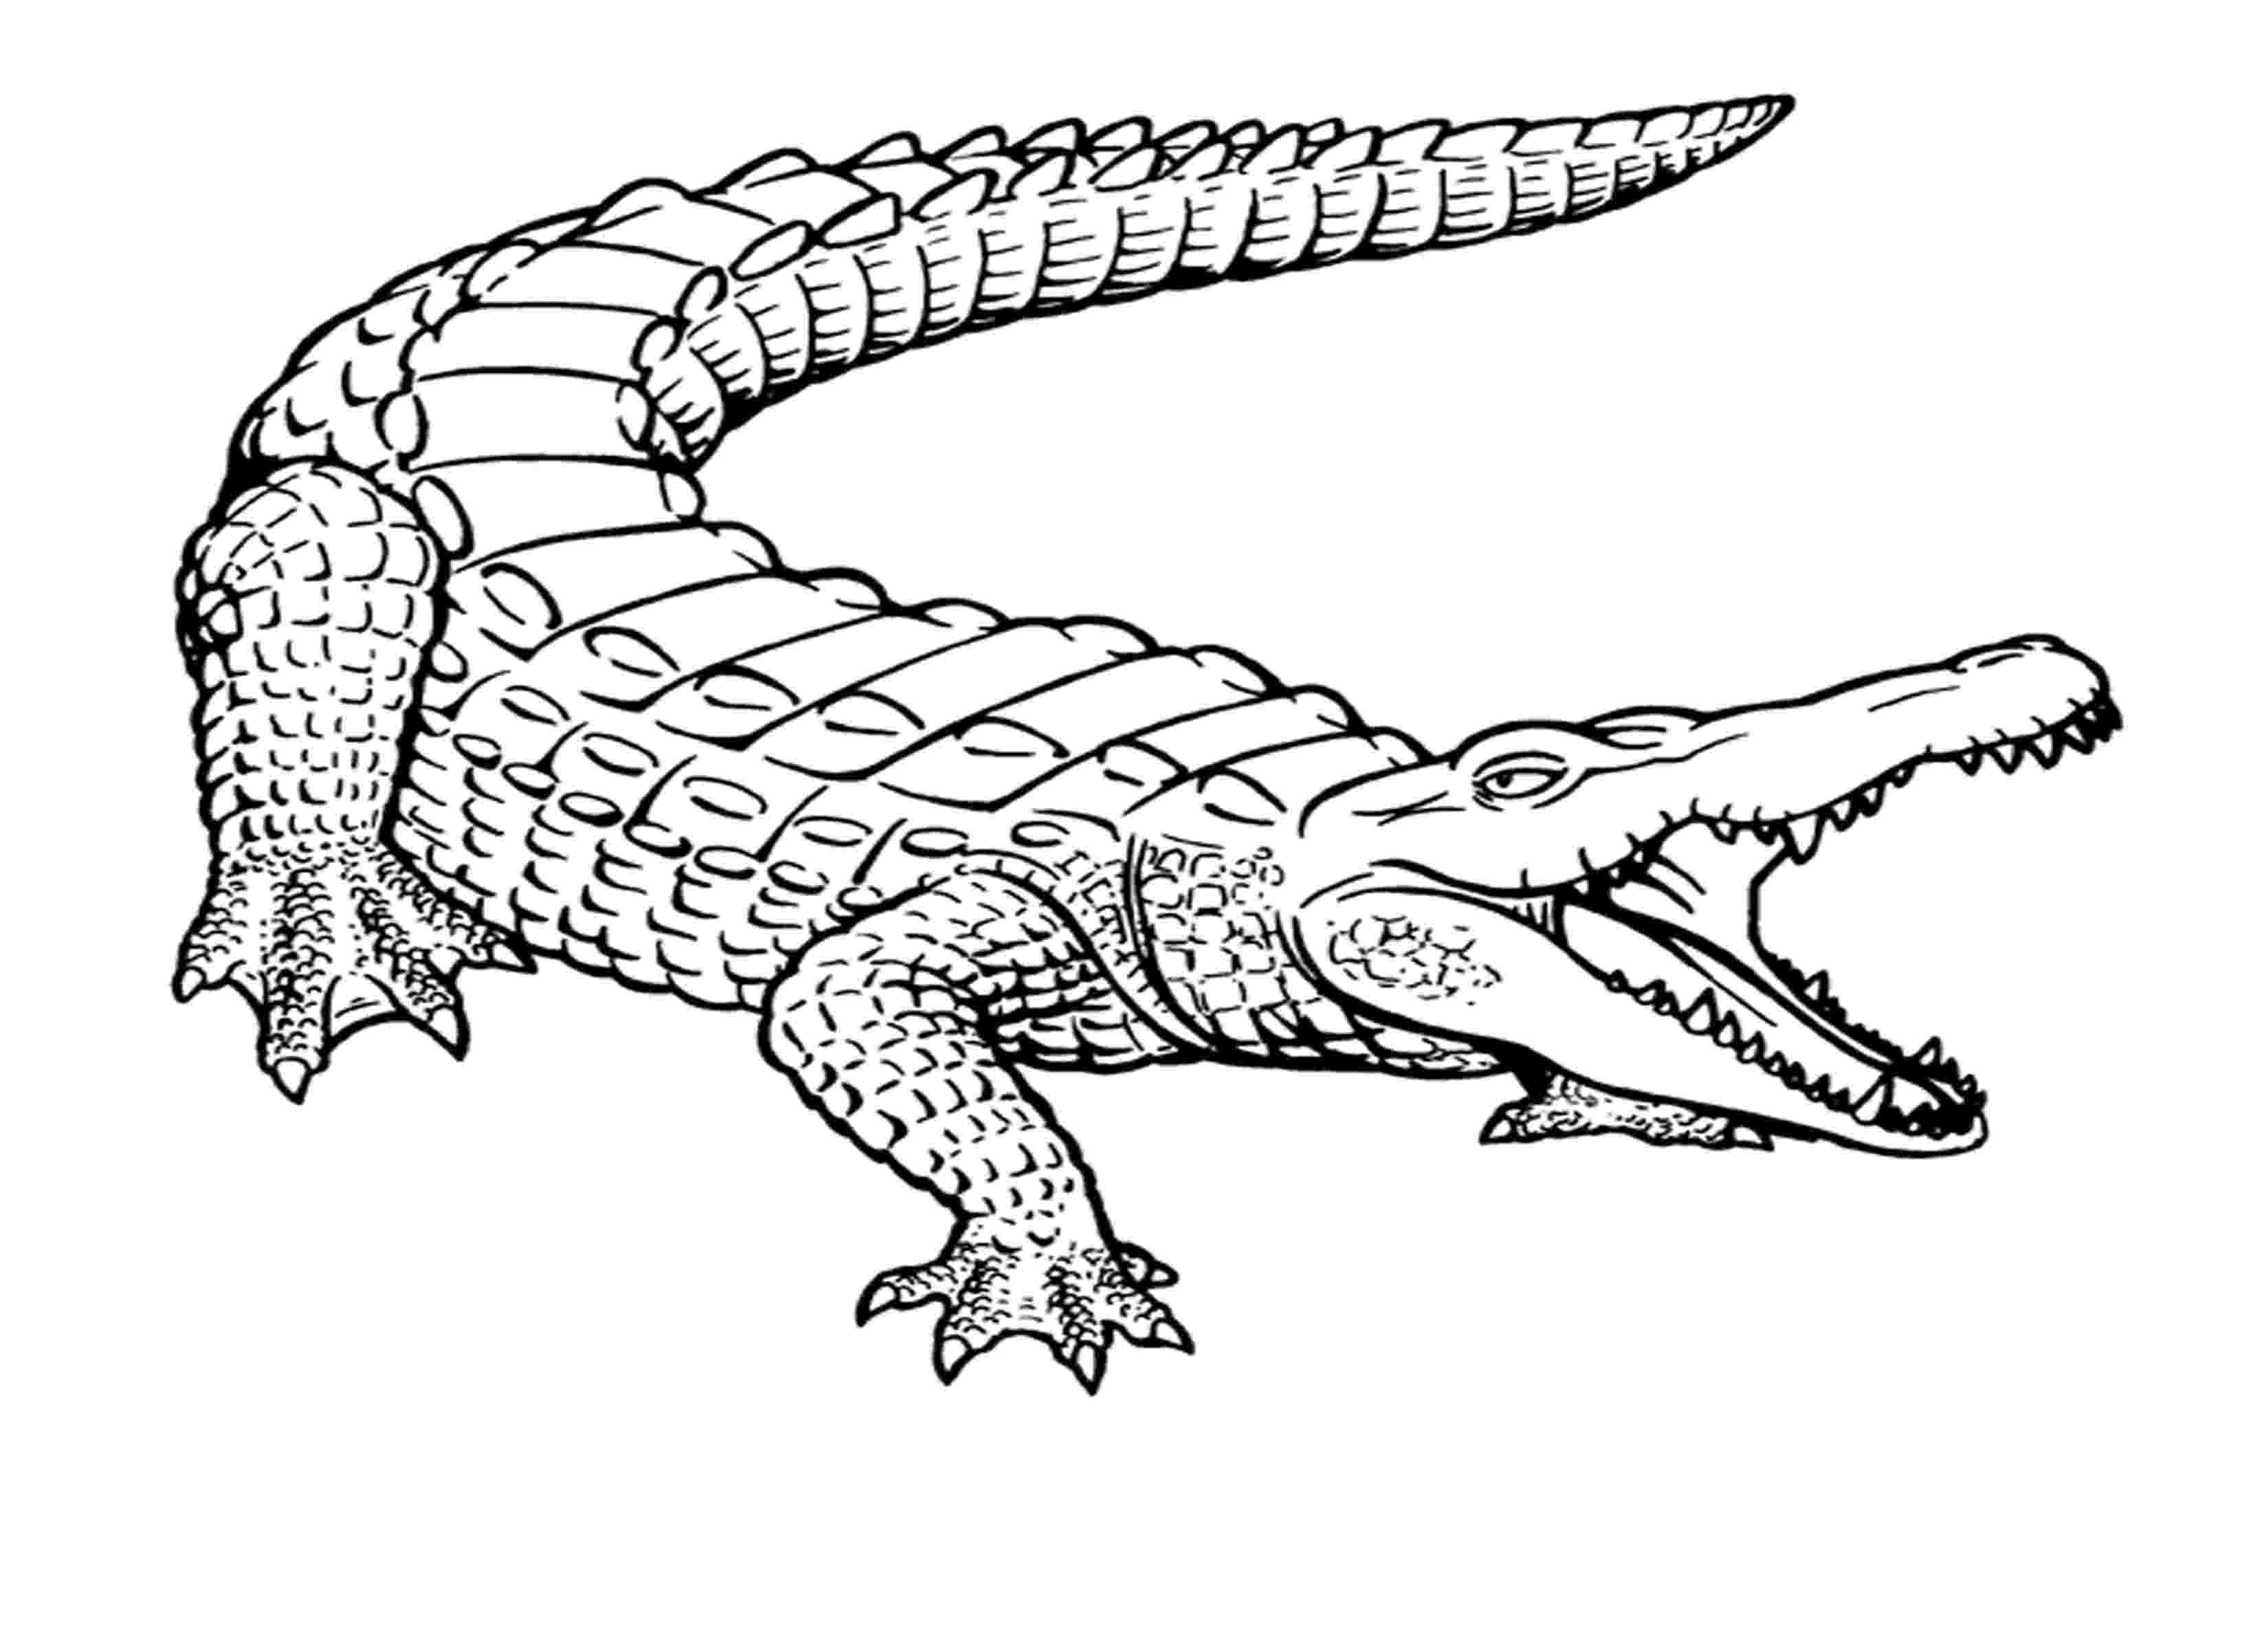 picture of a crocodile to colour free printable crocodile coloring pages for kids a of colour to crocodile picture